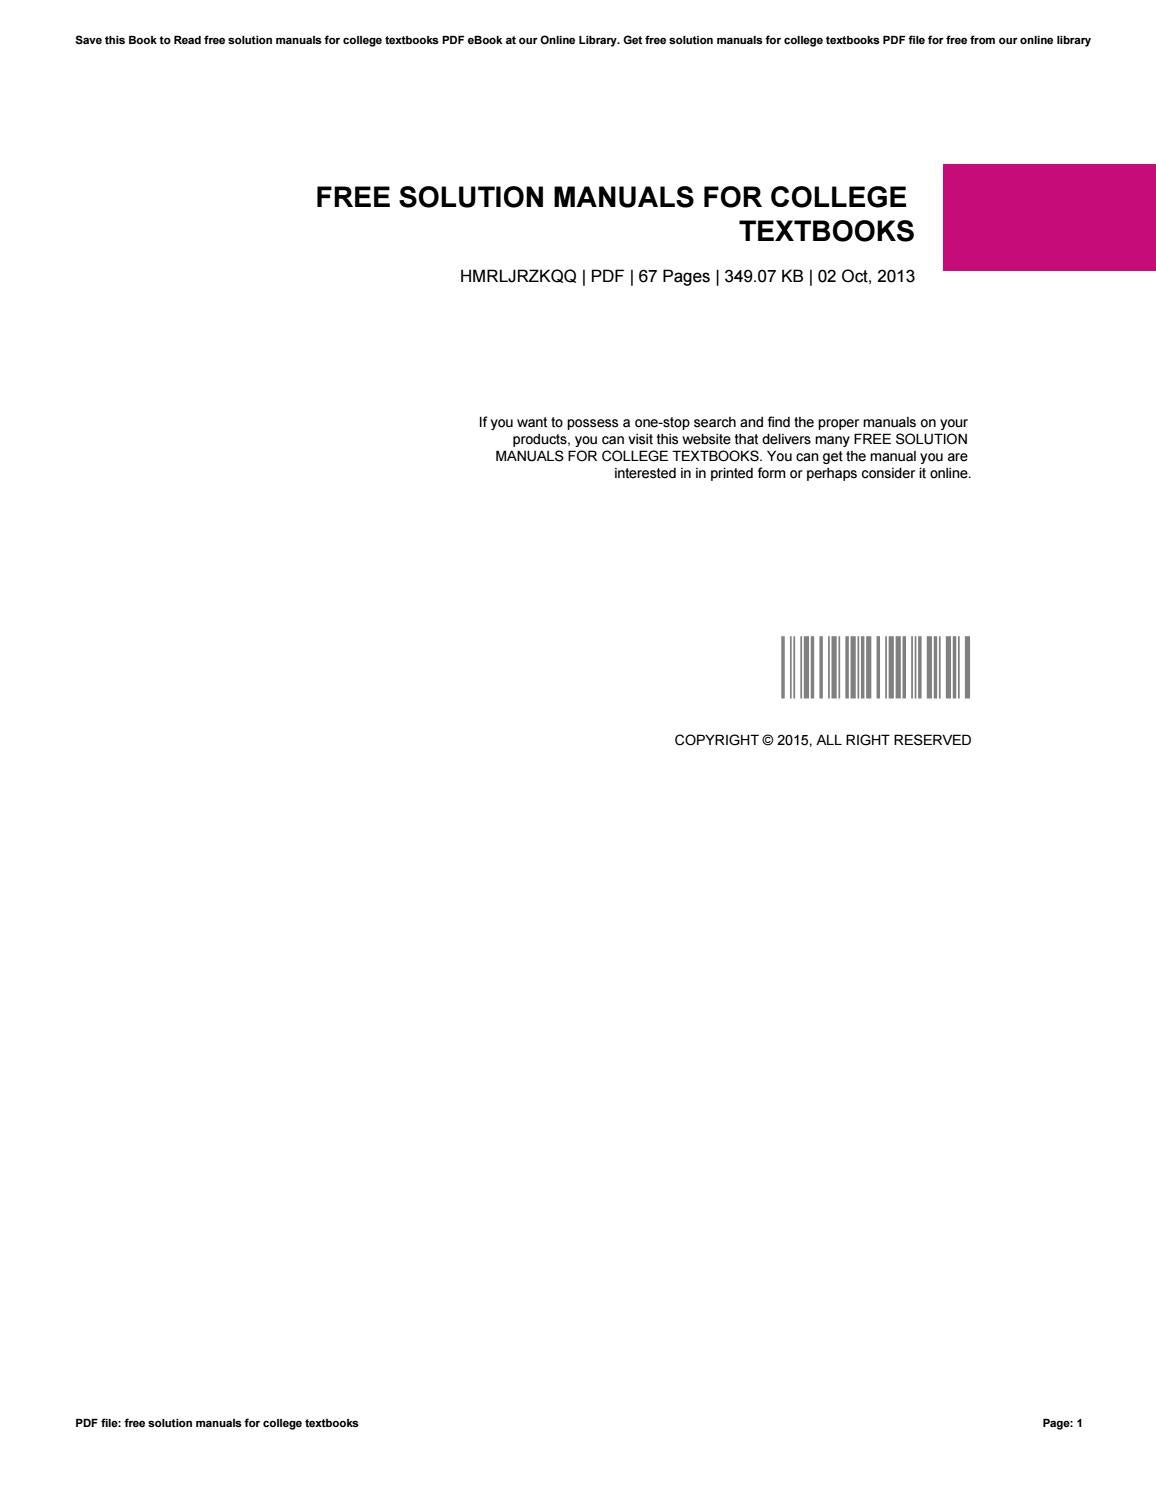 free solution manuals for